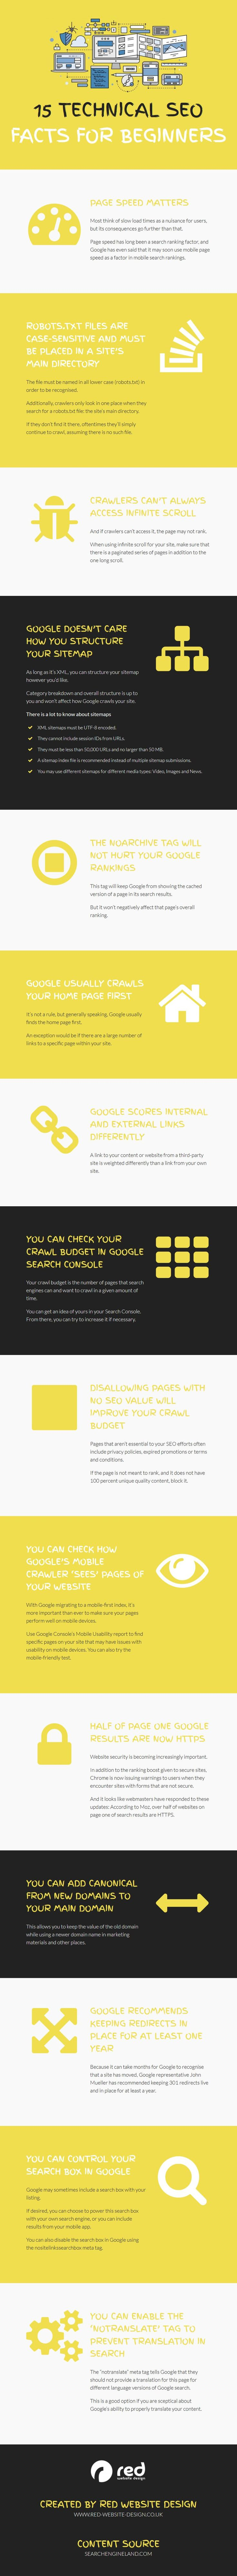 Can Google Crawl Your Site? 15 Technical SEO Facts You Need to Know [Infographic]